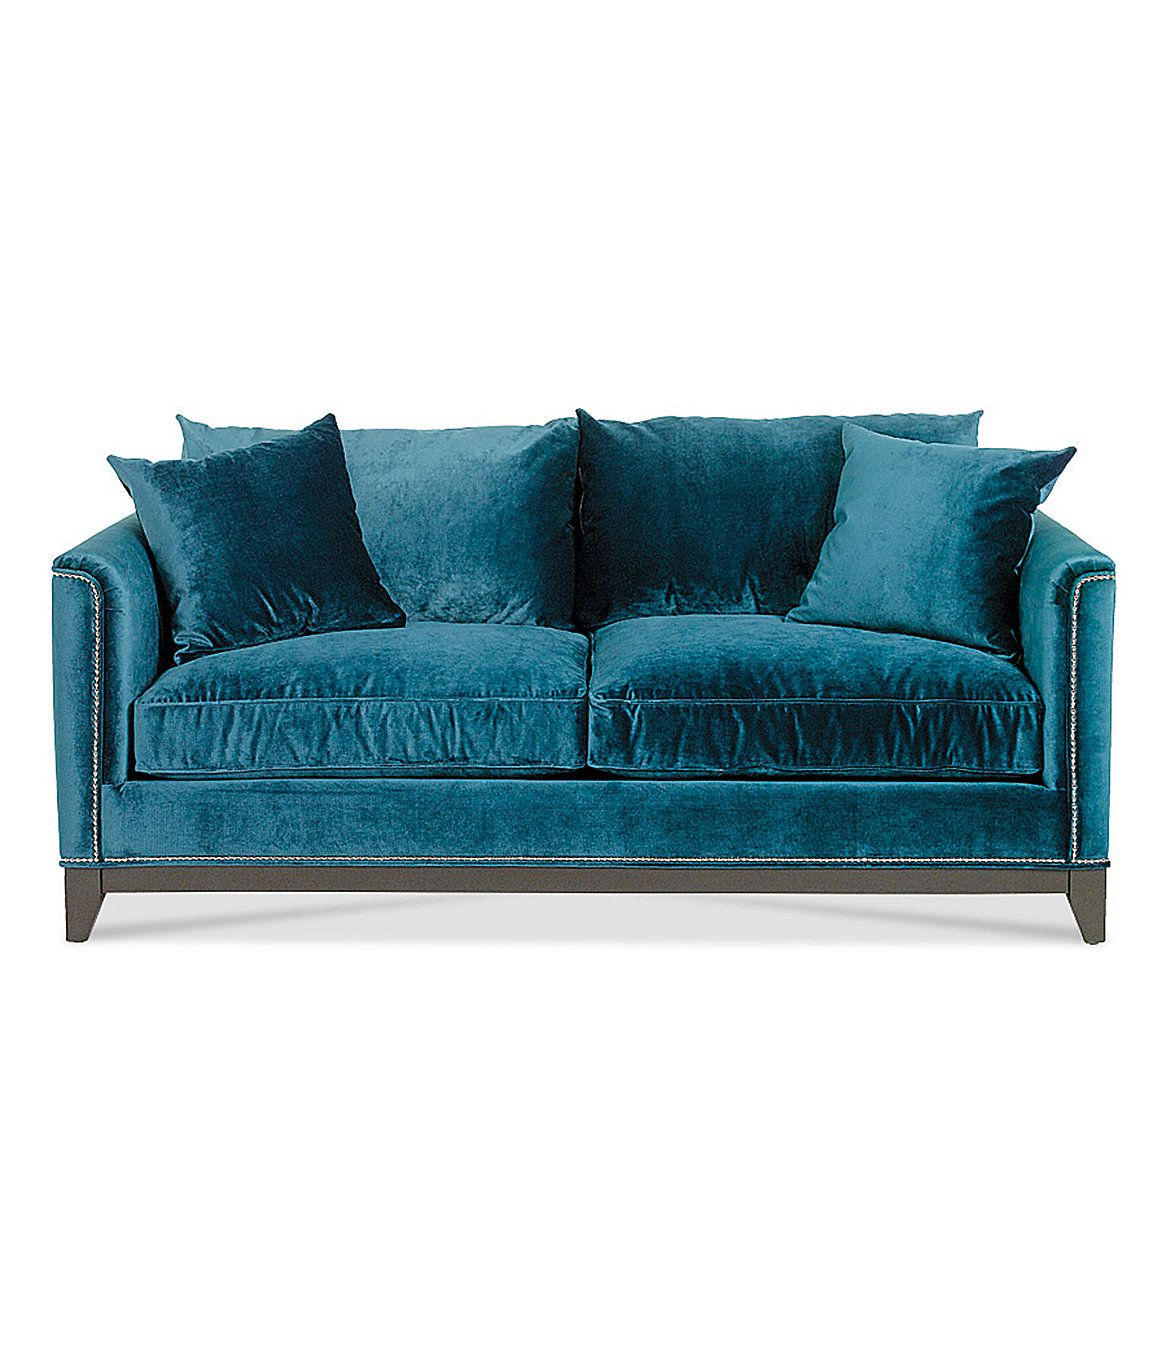 Jonathan Louis Mystere Sofa Dillards I Forget That Dillard S Has